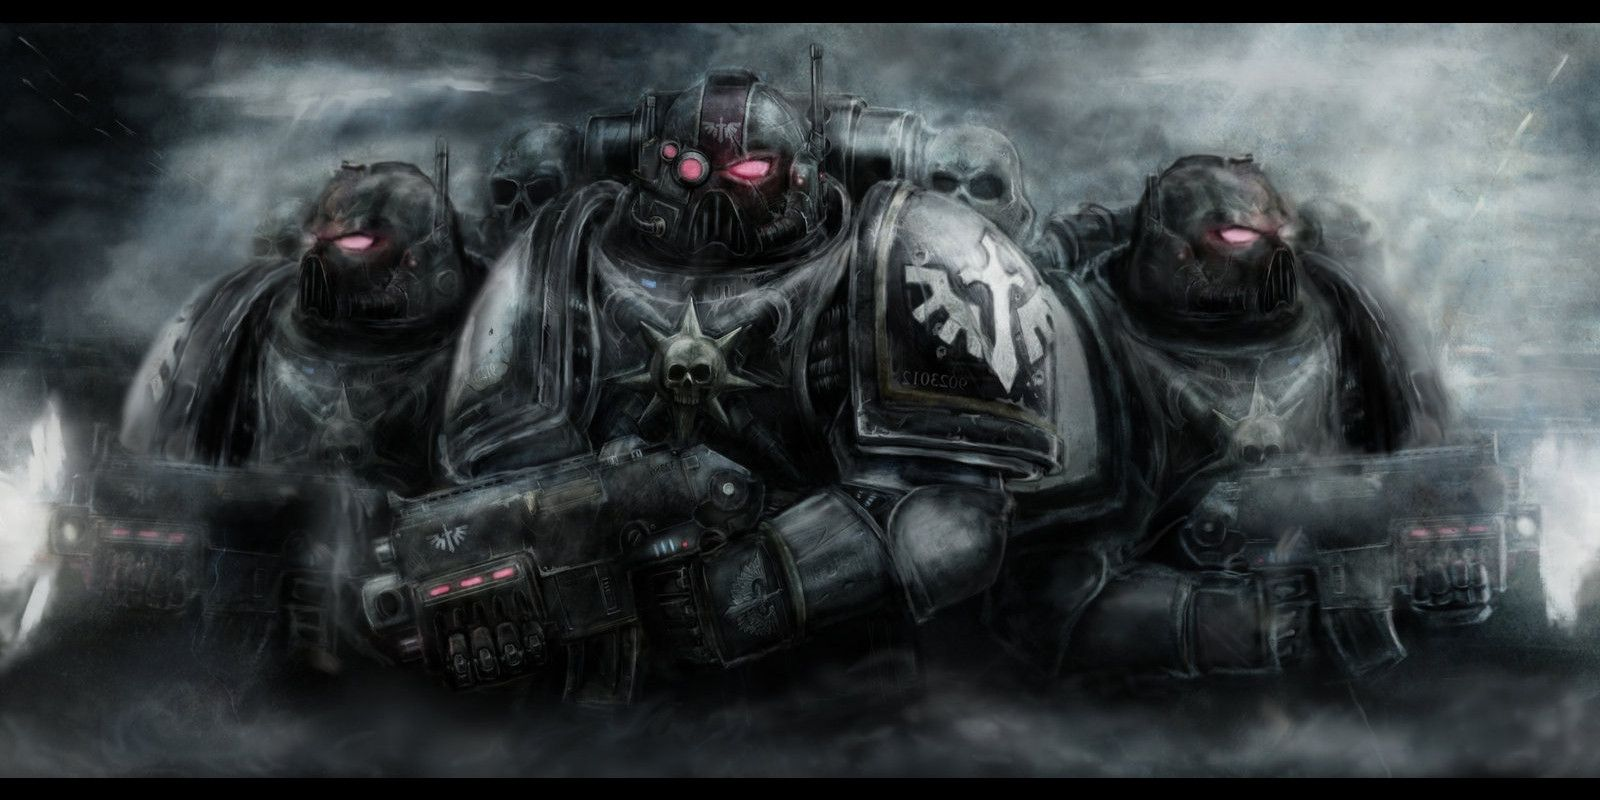 warhammer 40k desktop backgrounds - sf wallpaper